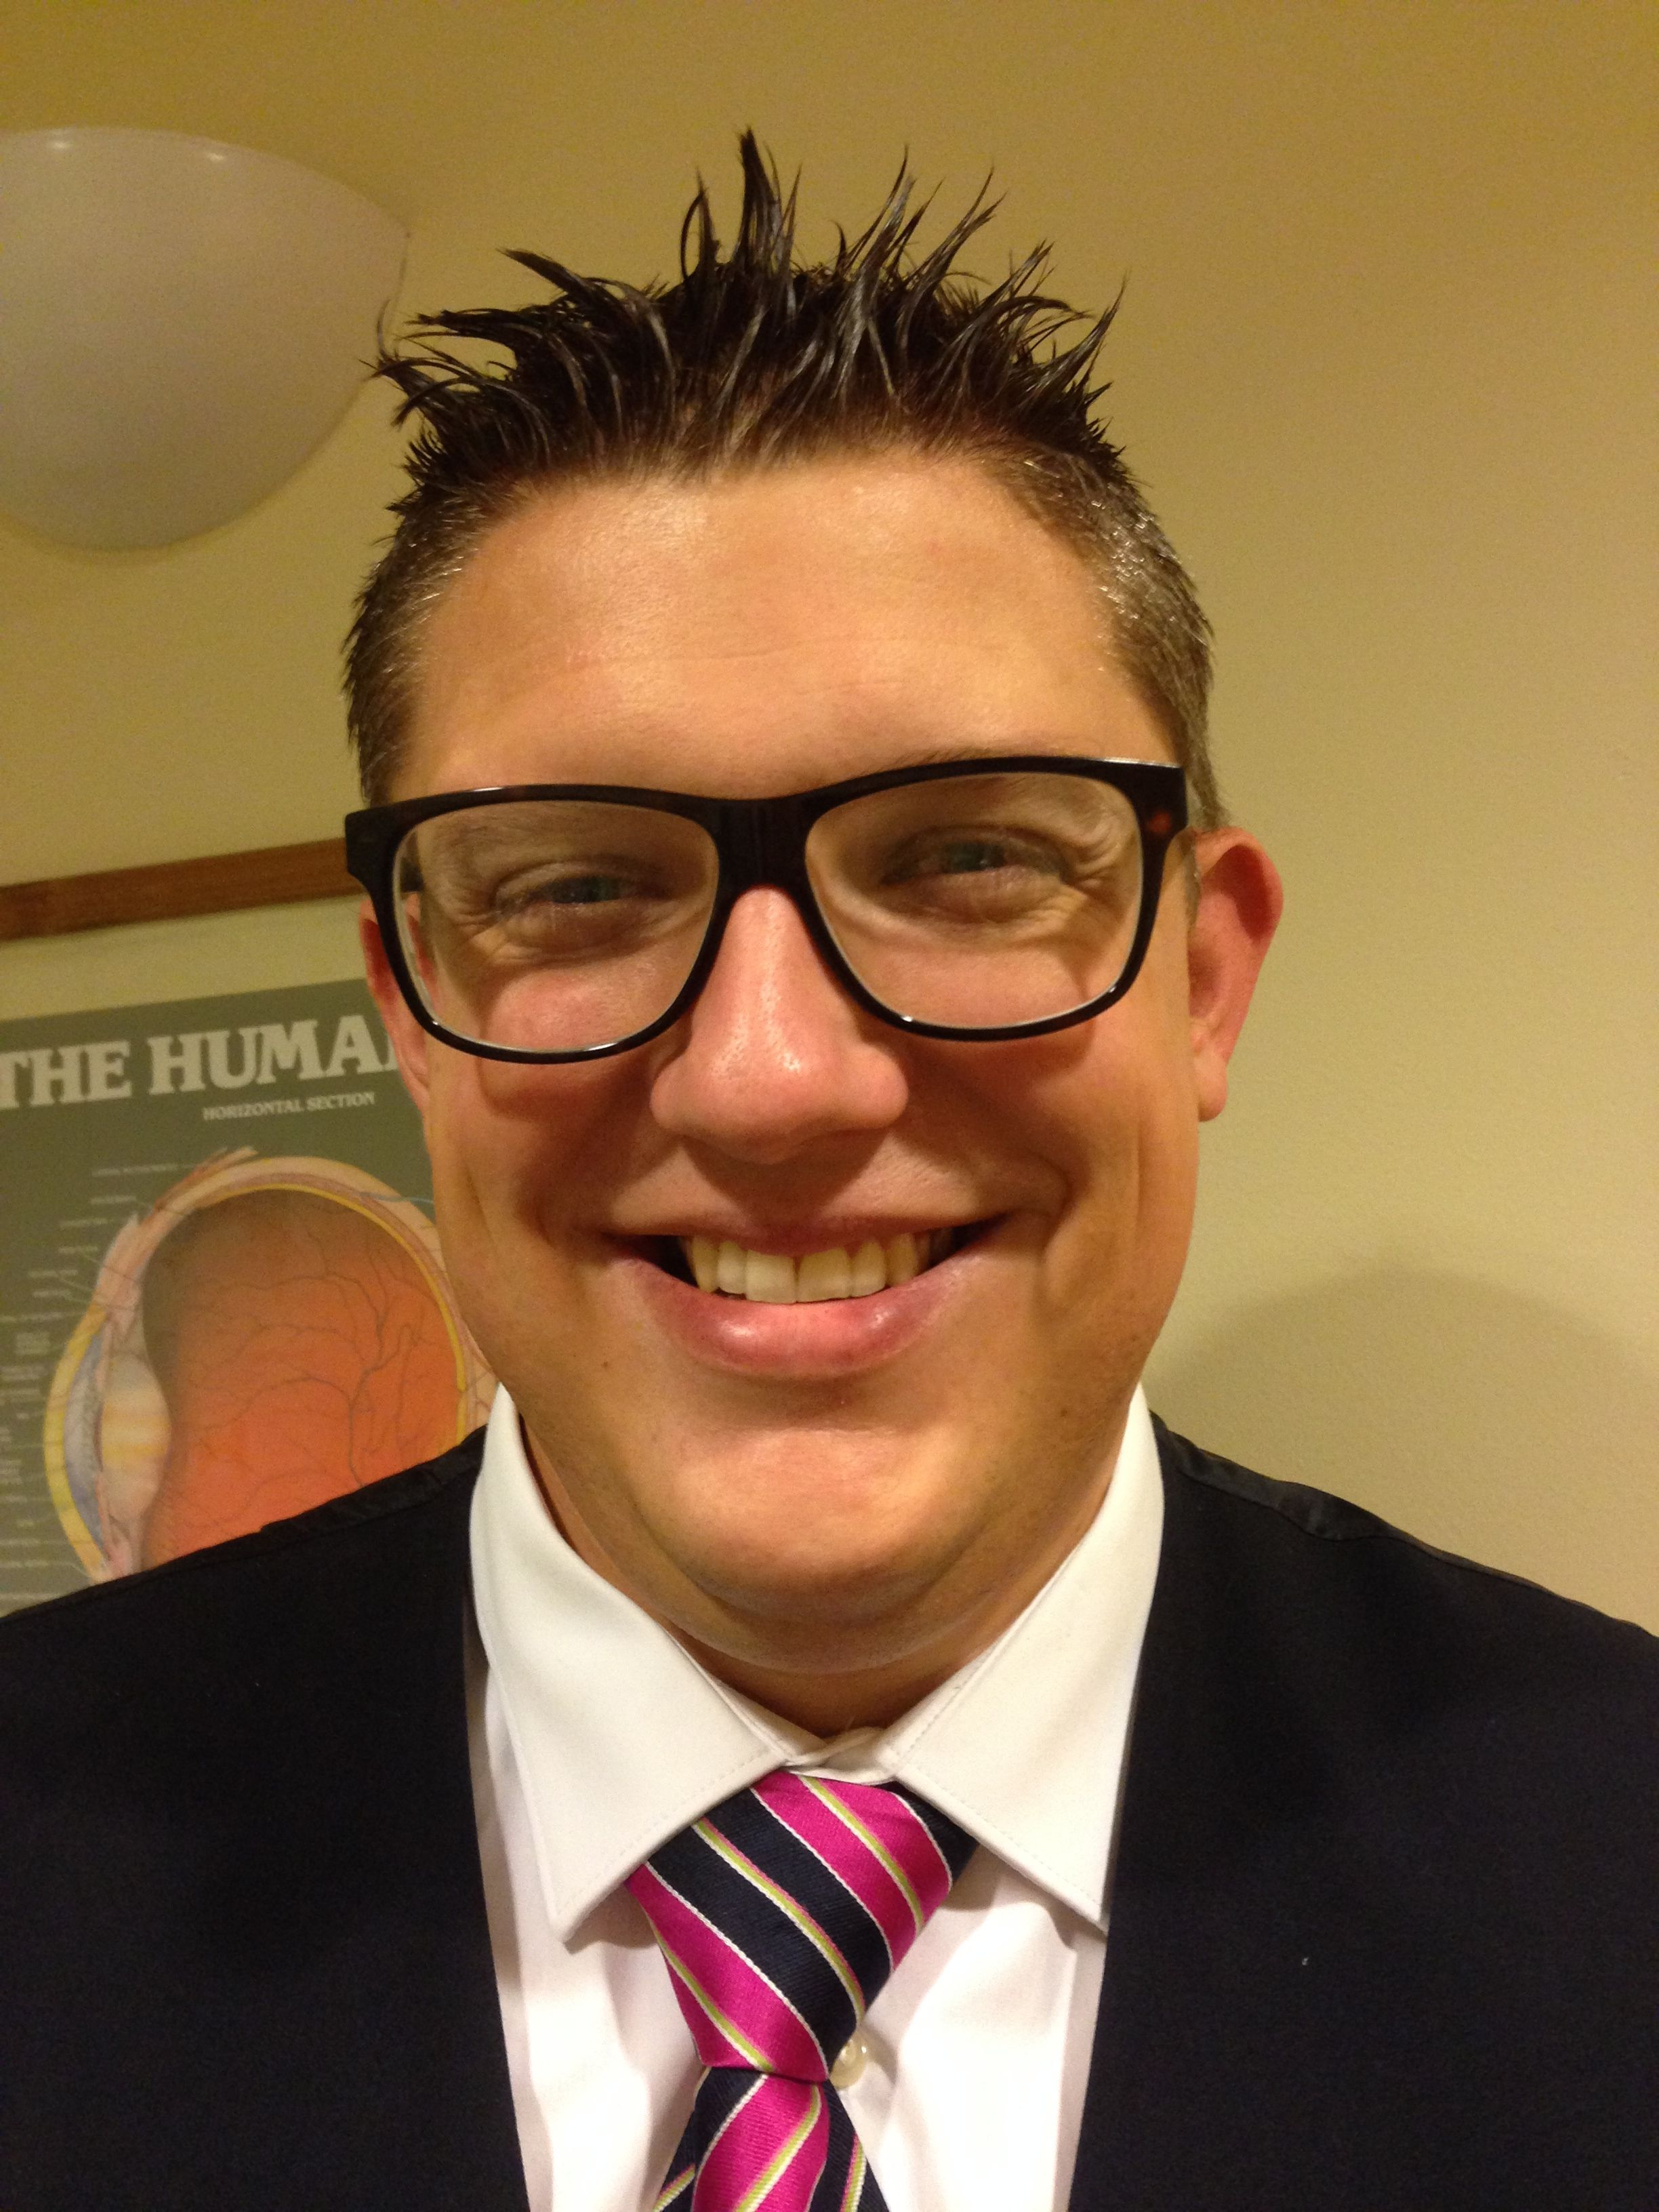 Matt store manager and dispensing optician of Redhill Specsavers